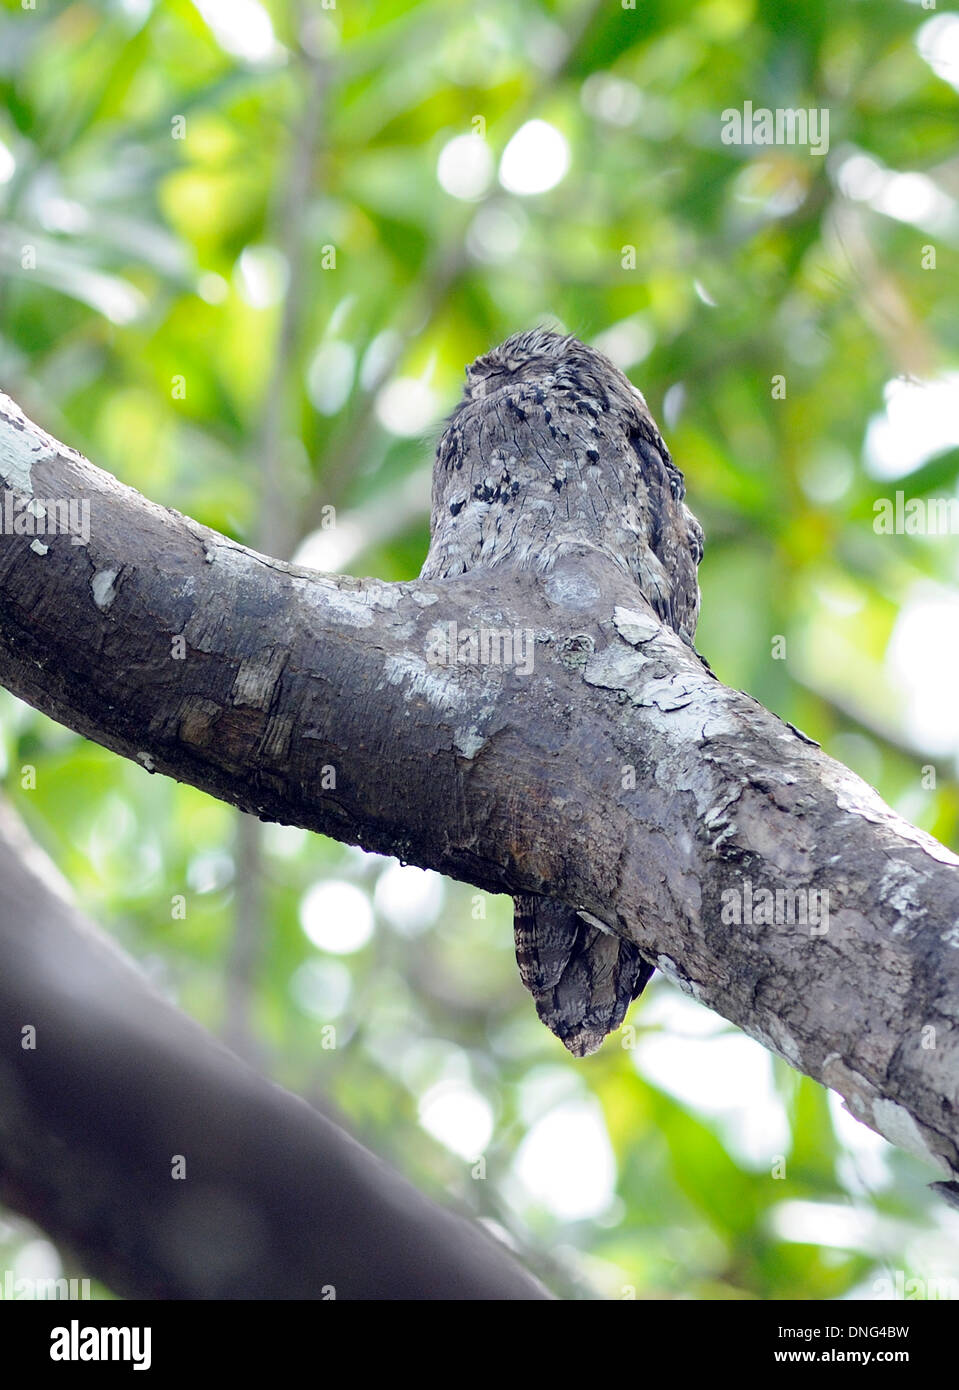 A Common Potoo (Nyctibius grisius) sits, camouflaged for the day, on a stump on a tree branch. - Stock Image